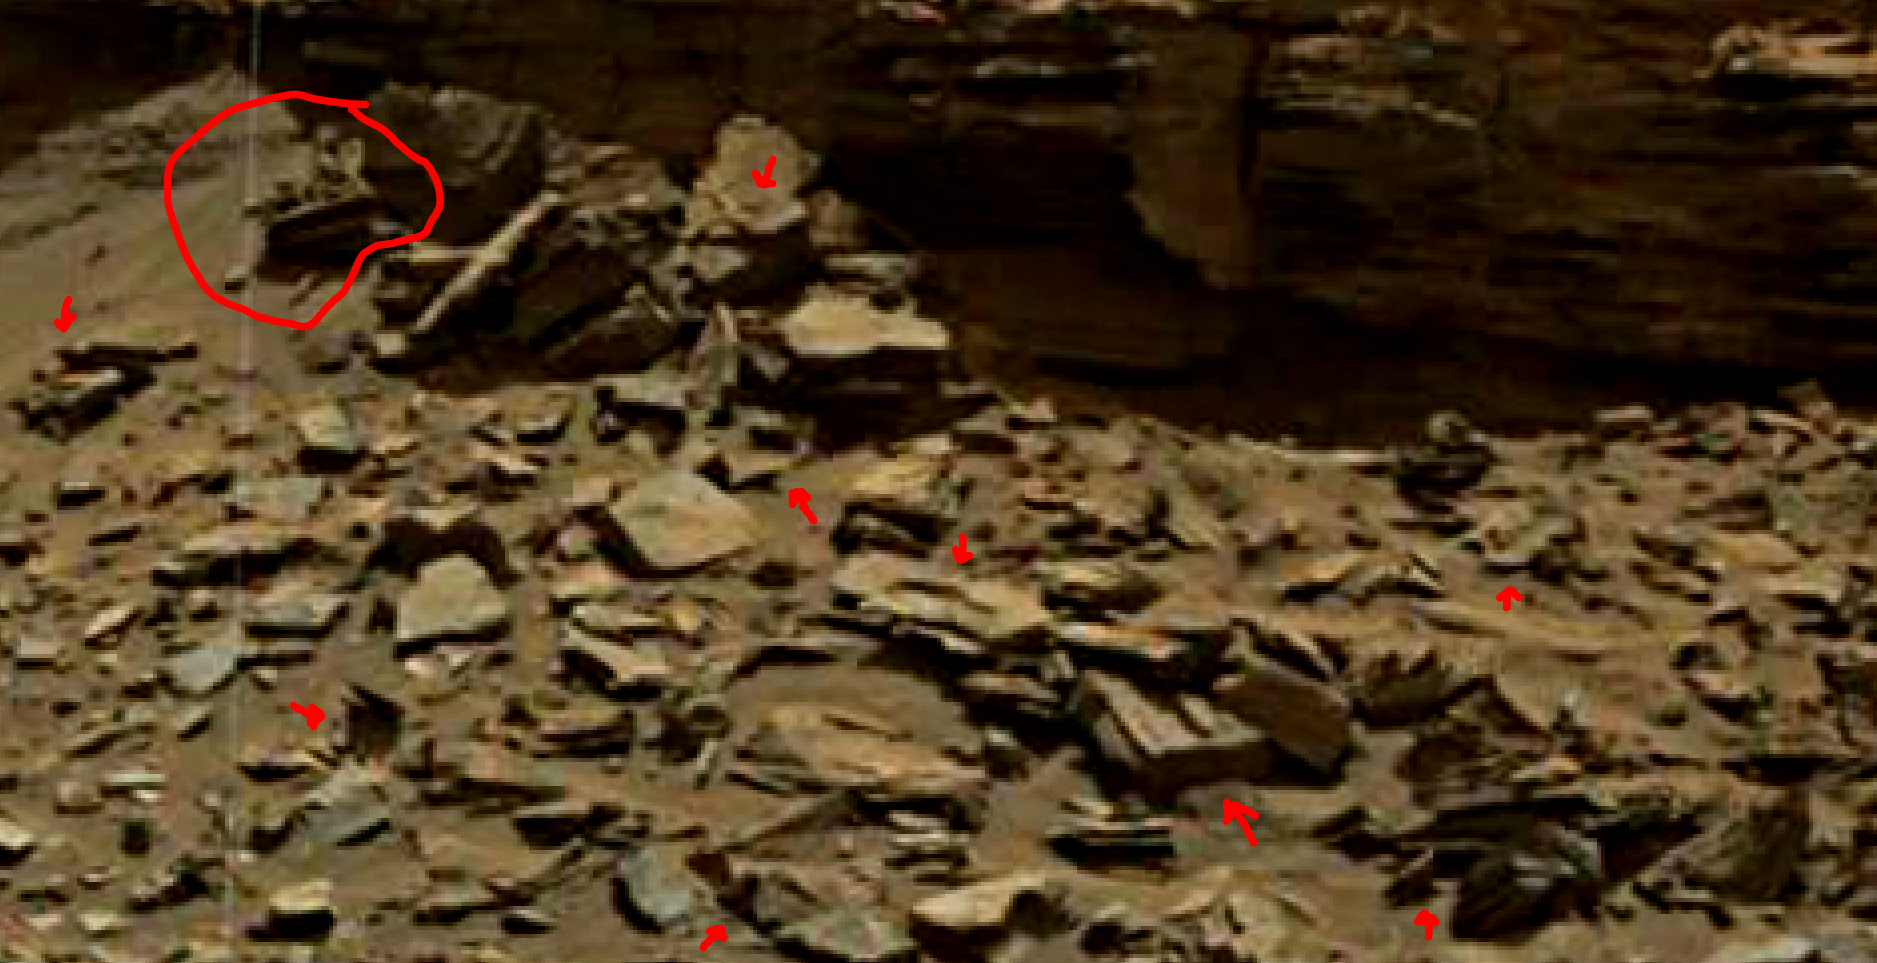 mars sol 1438 anomaly artifacts 1 was life on mars